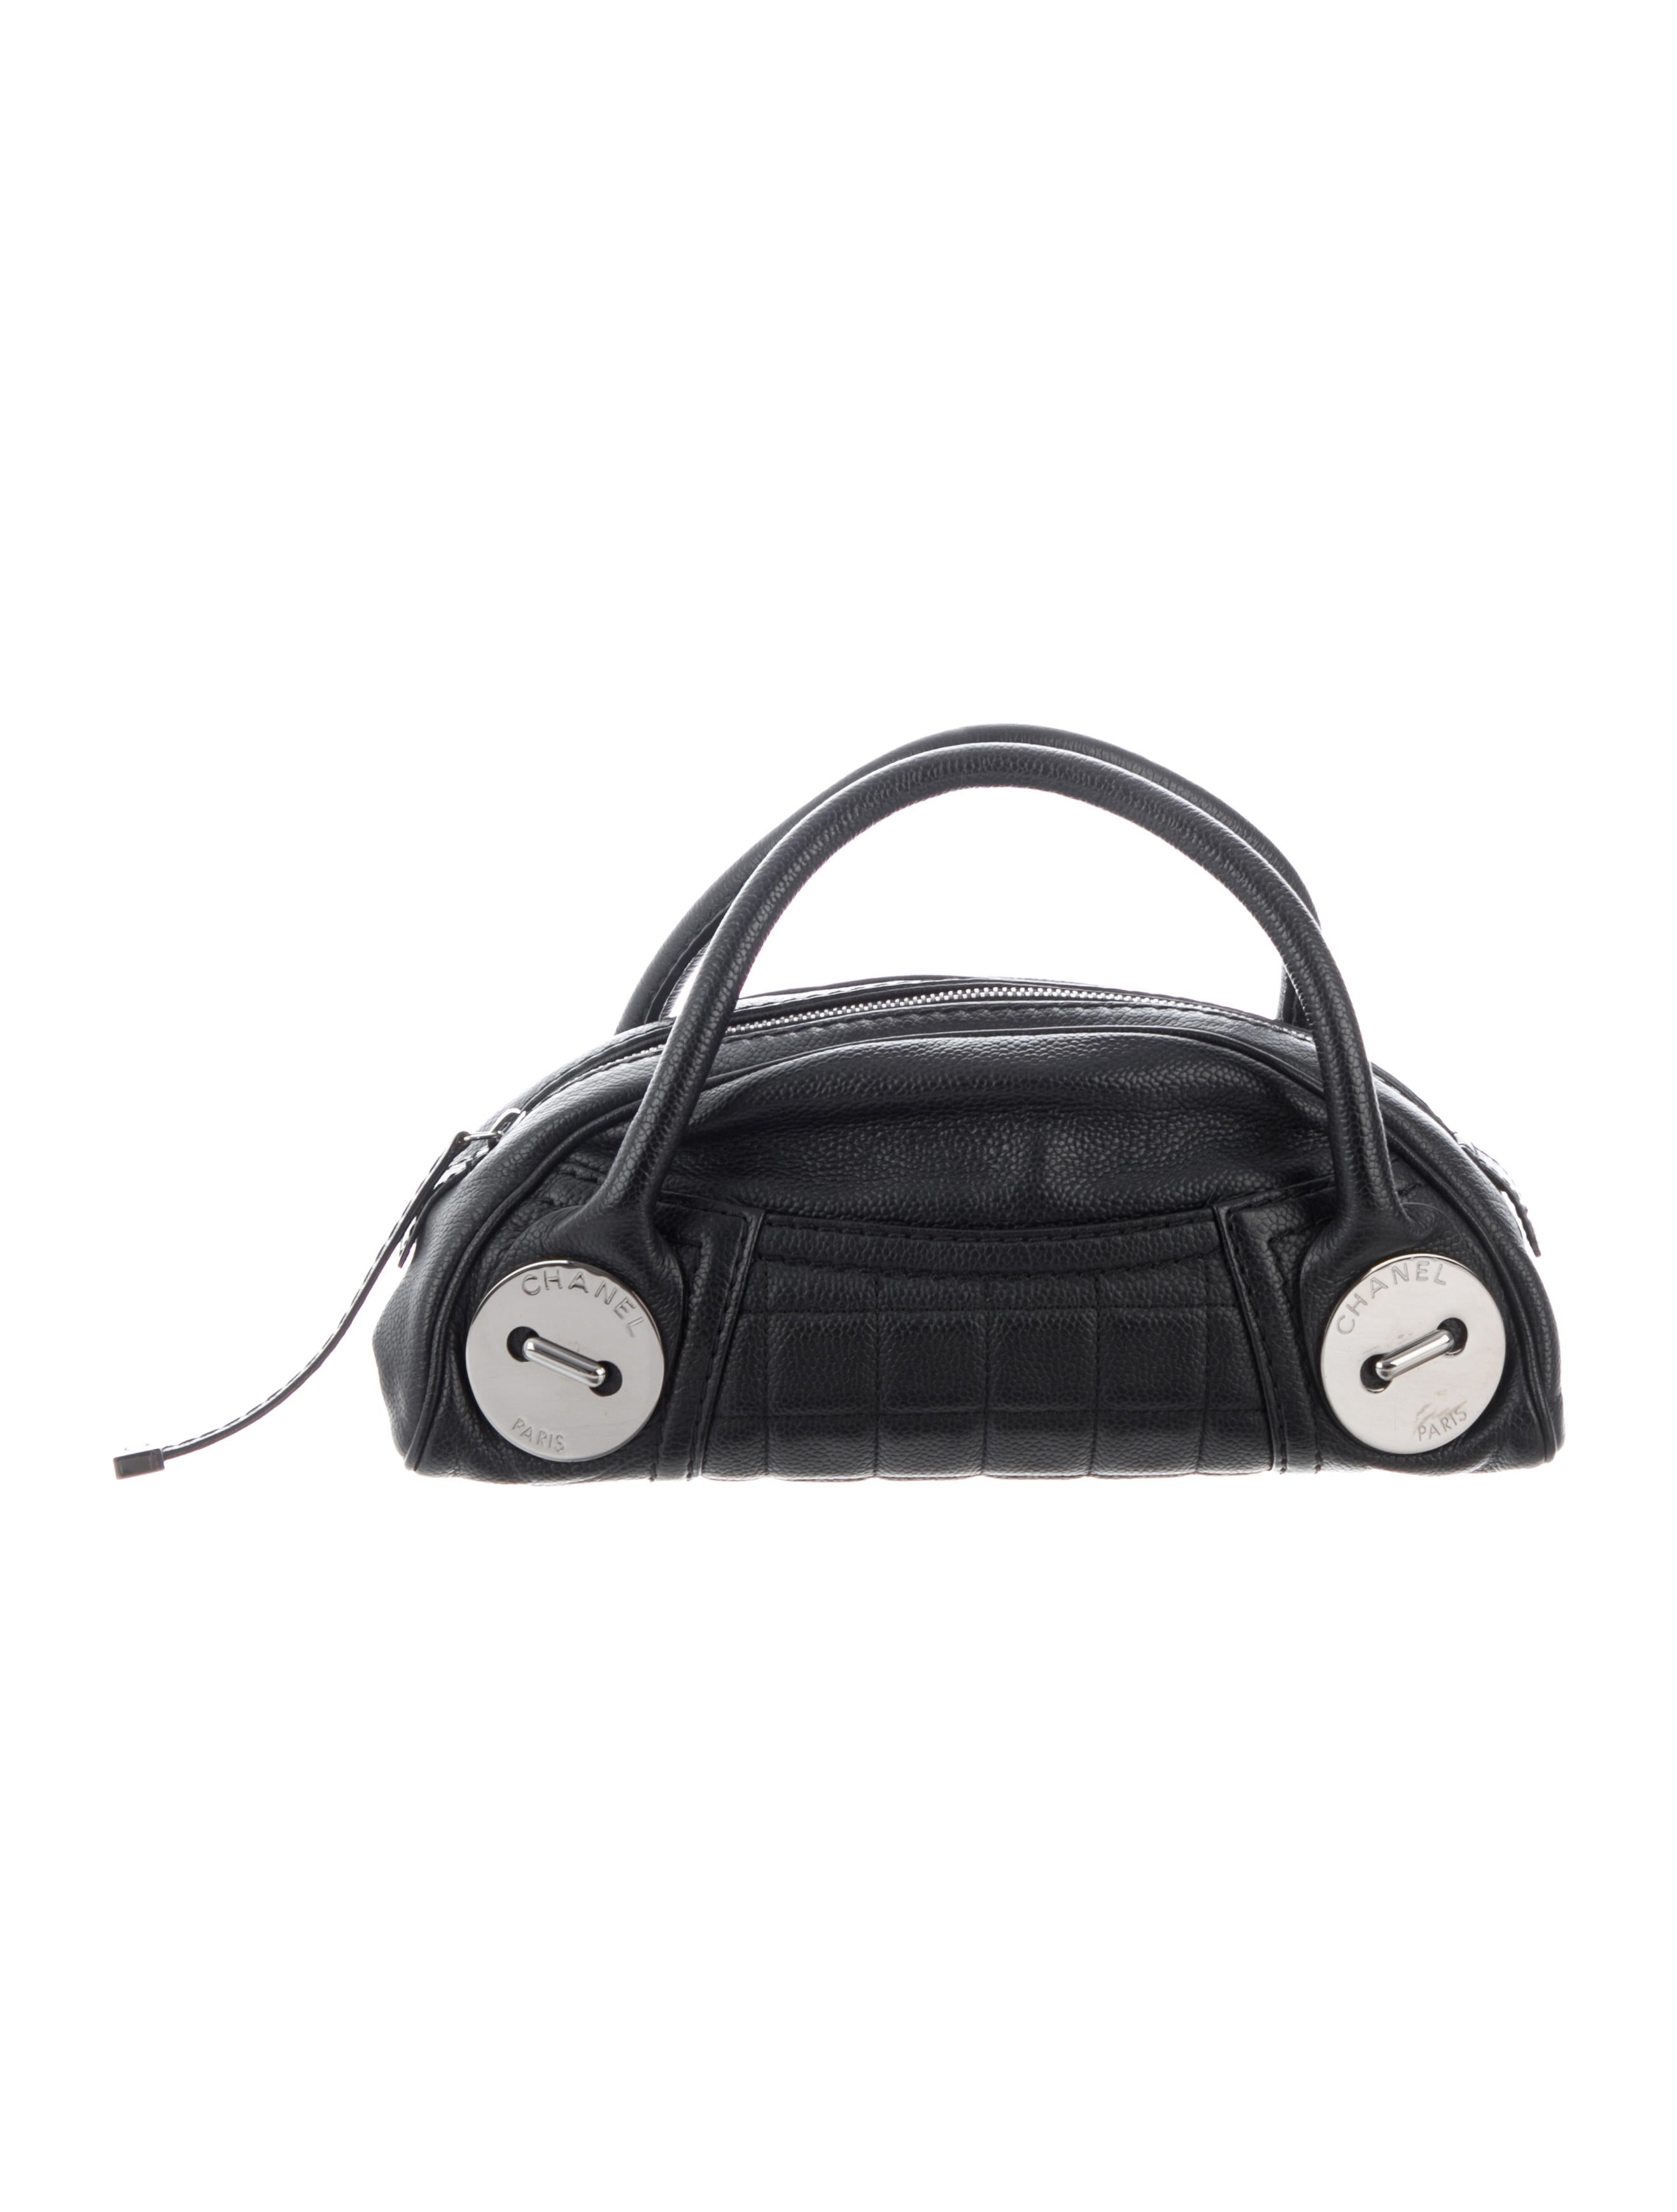 f76d1bac52a Chanel Handbags   The RealReal